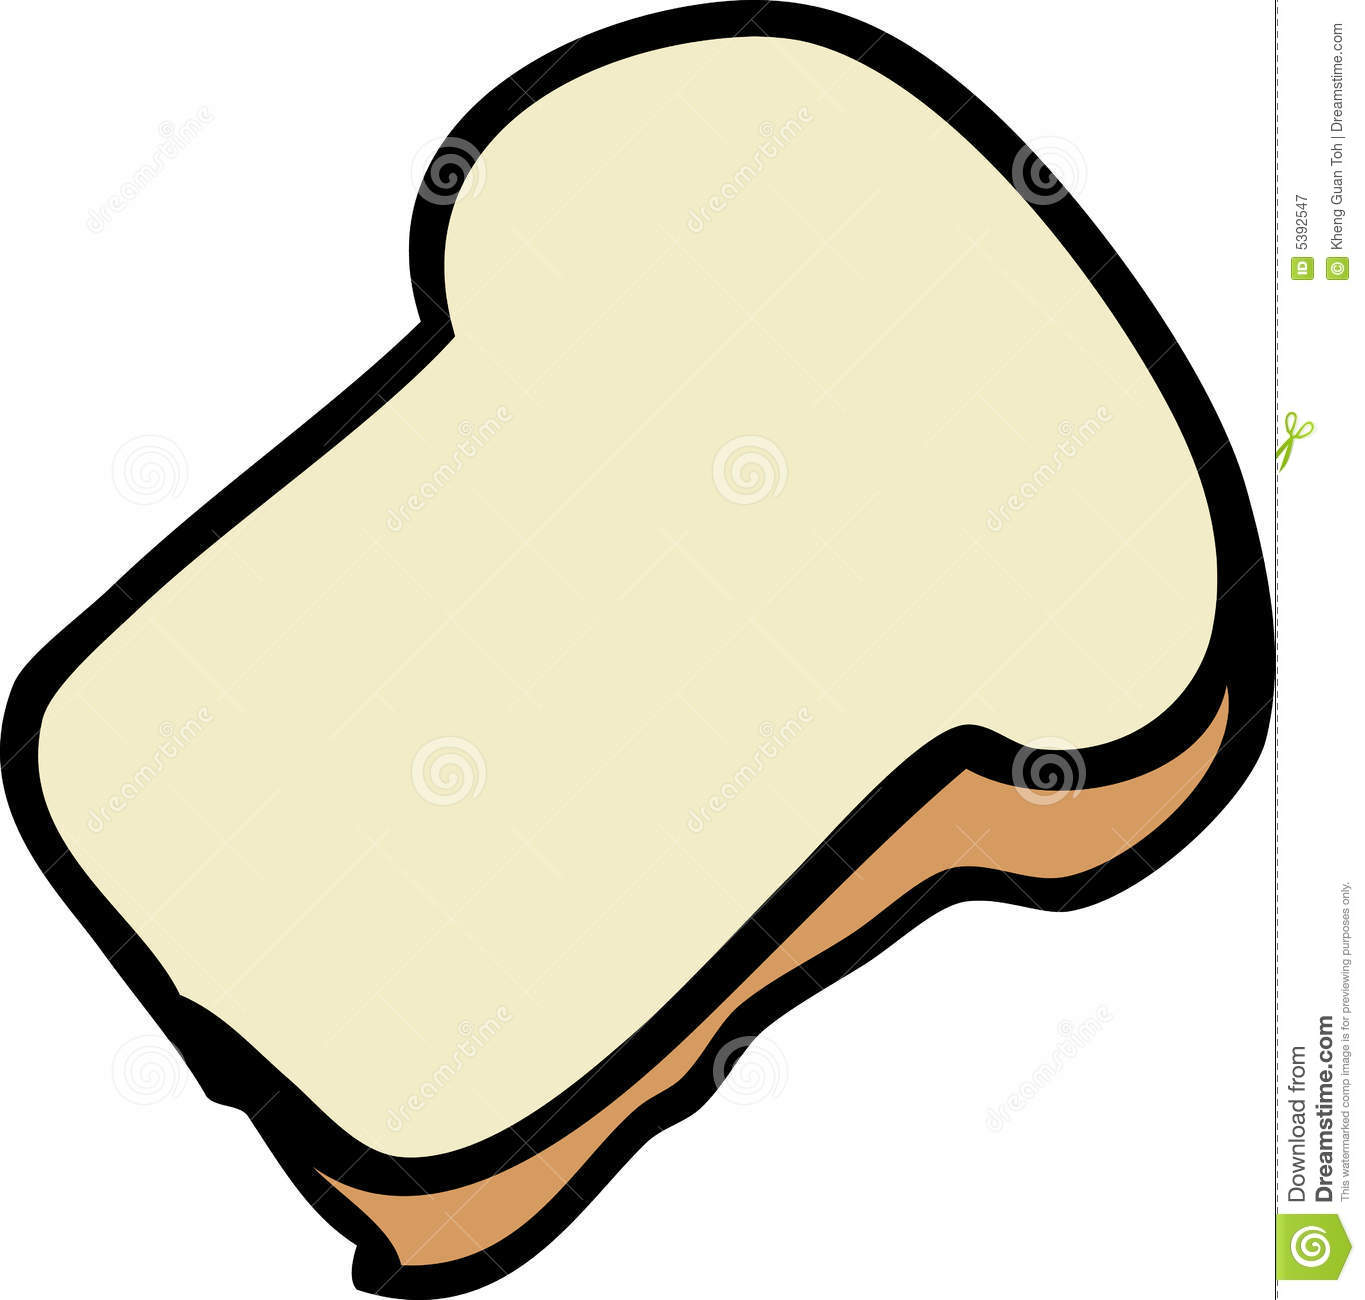 Slice Of Bread Royalty Free Stock Photography - Image: 5392547